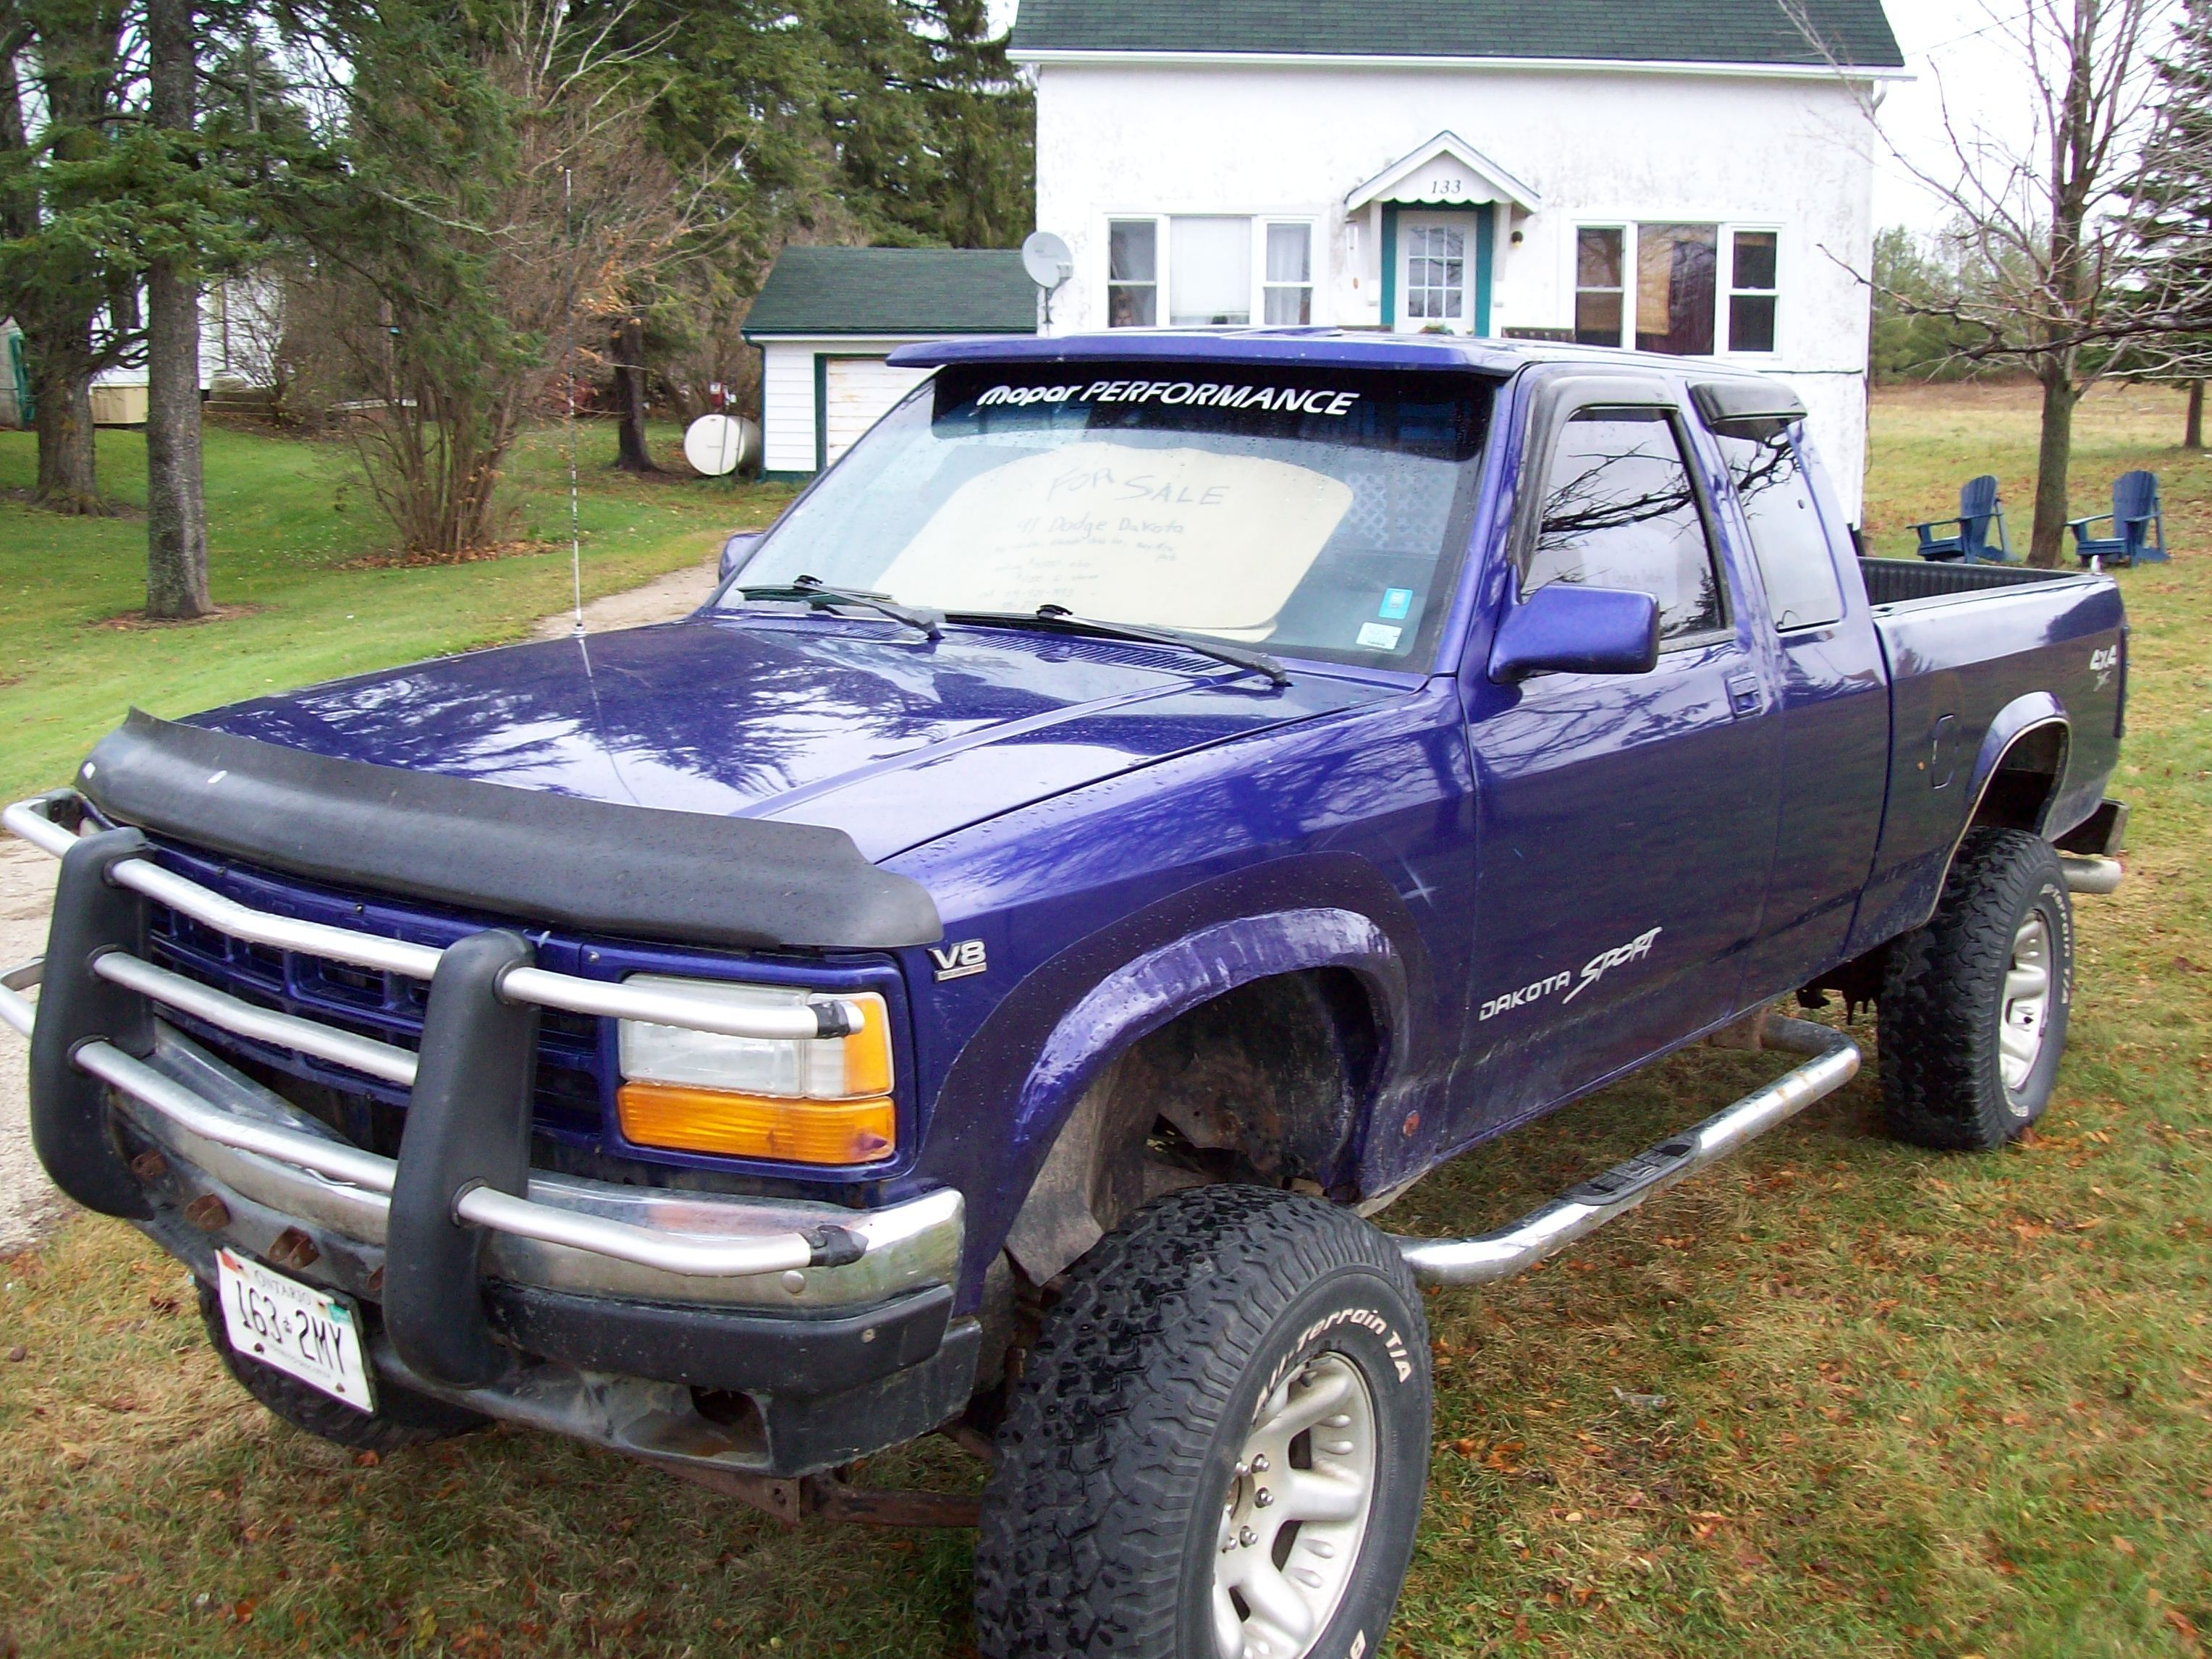 bigfoot maggee 1991 dodge dakota regular cab chassis s photo gallery at cardomain cardomain